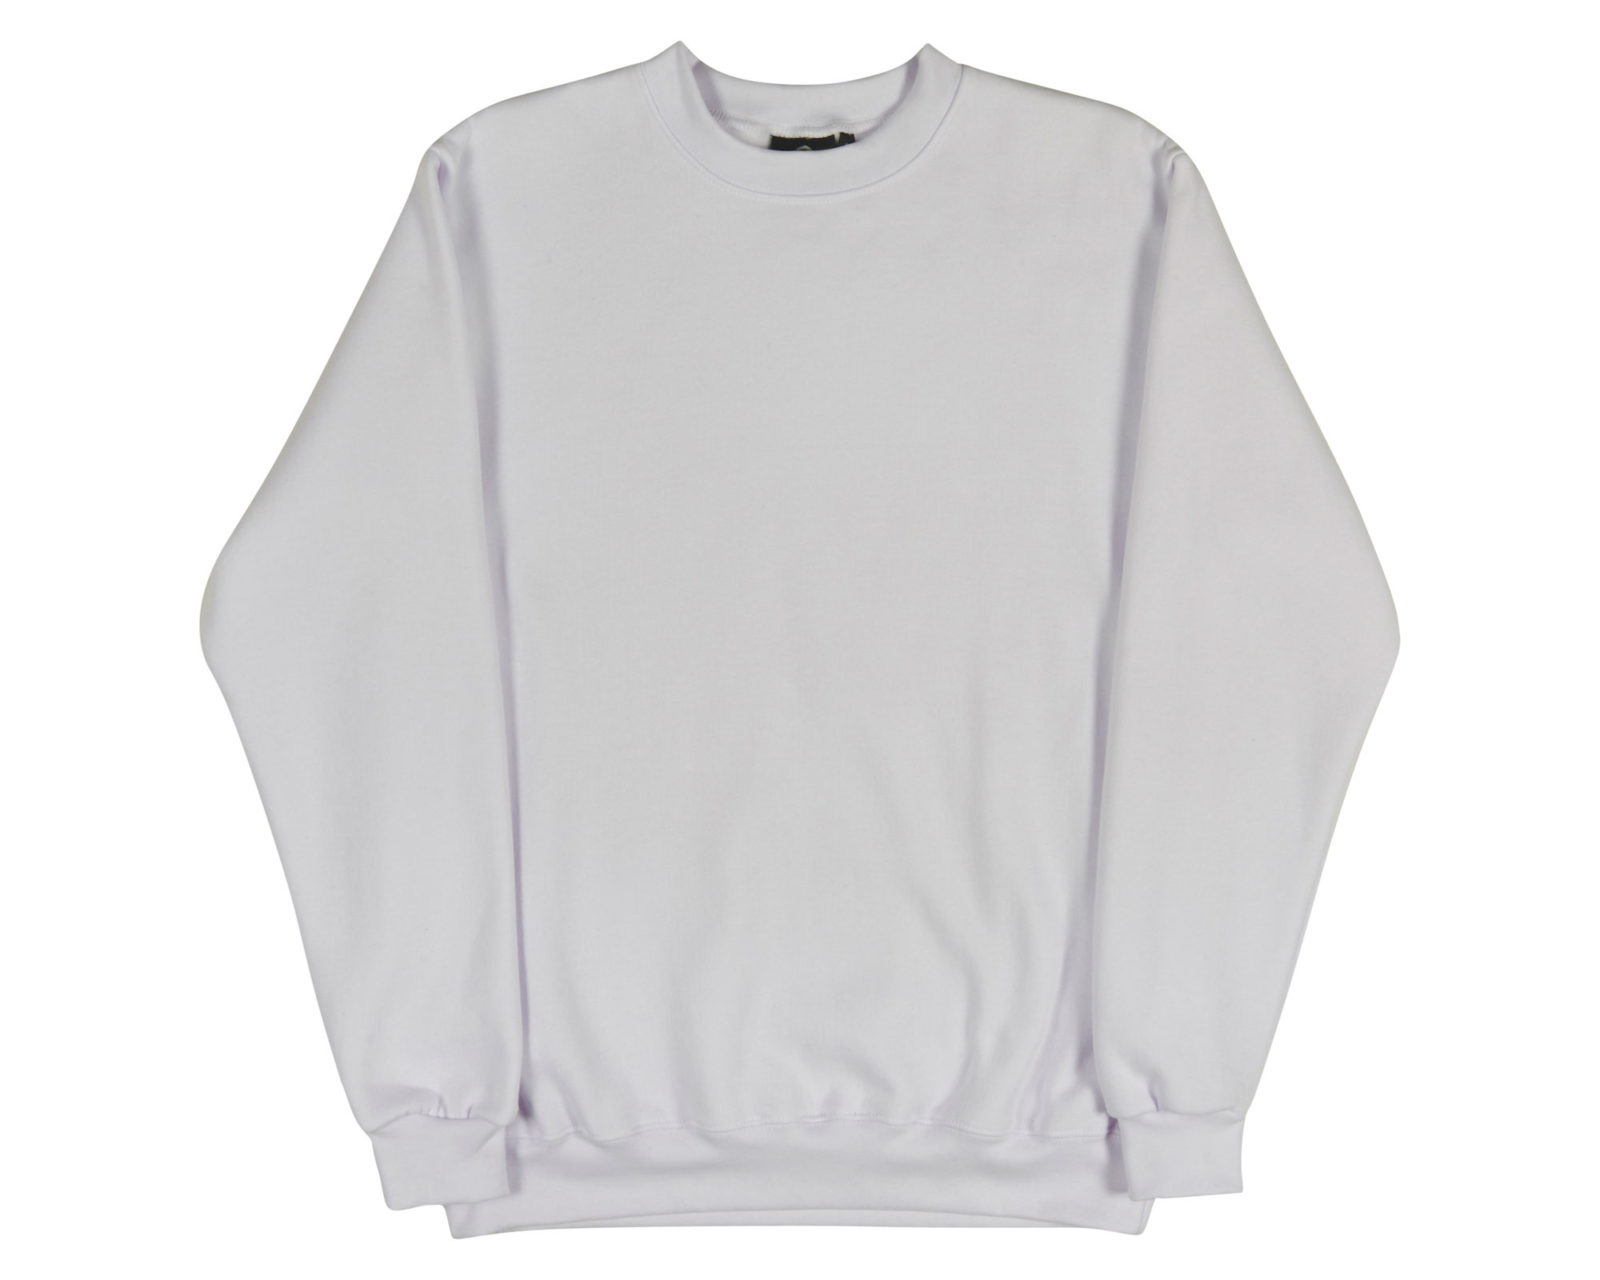 Qualitops Mens Windcheater Polycotton Australian made clothing